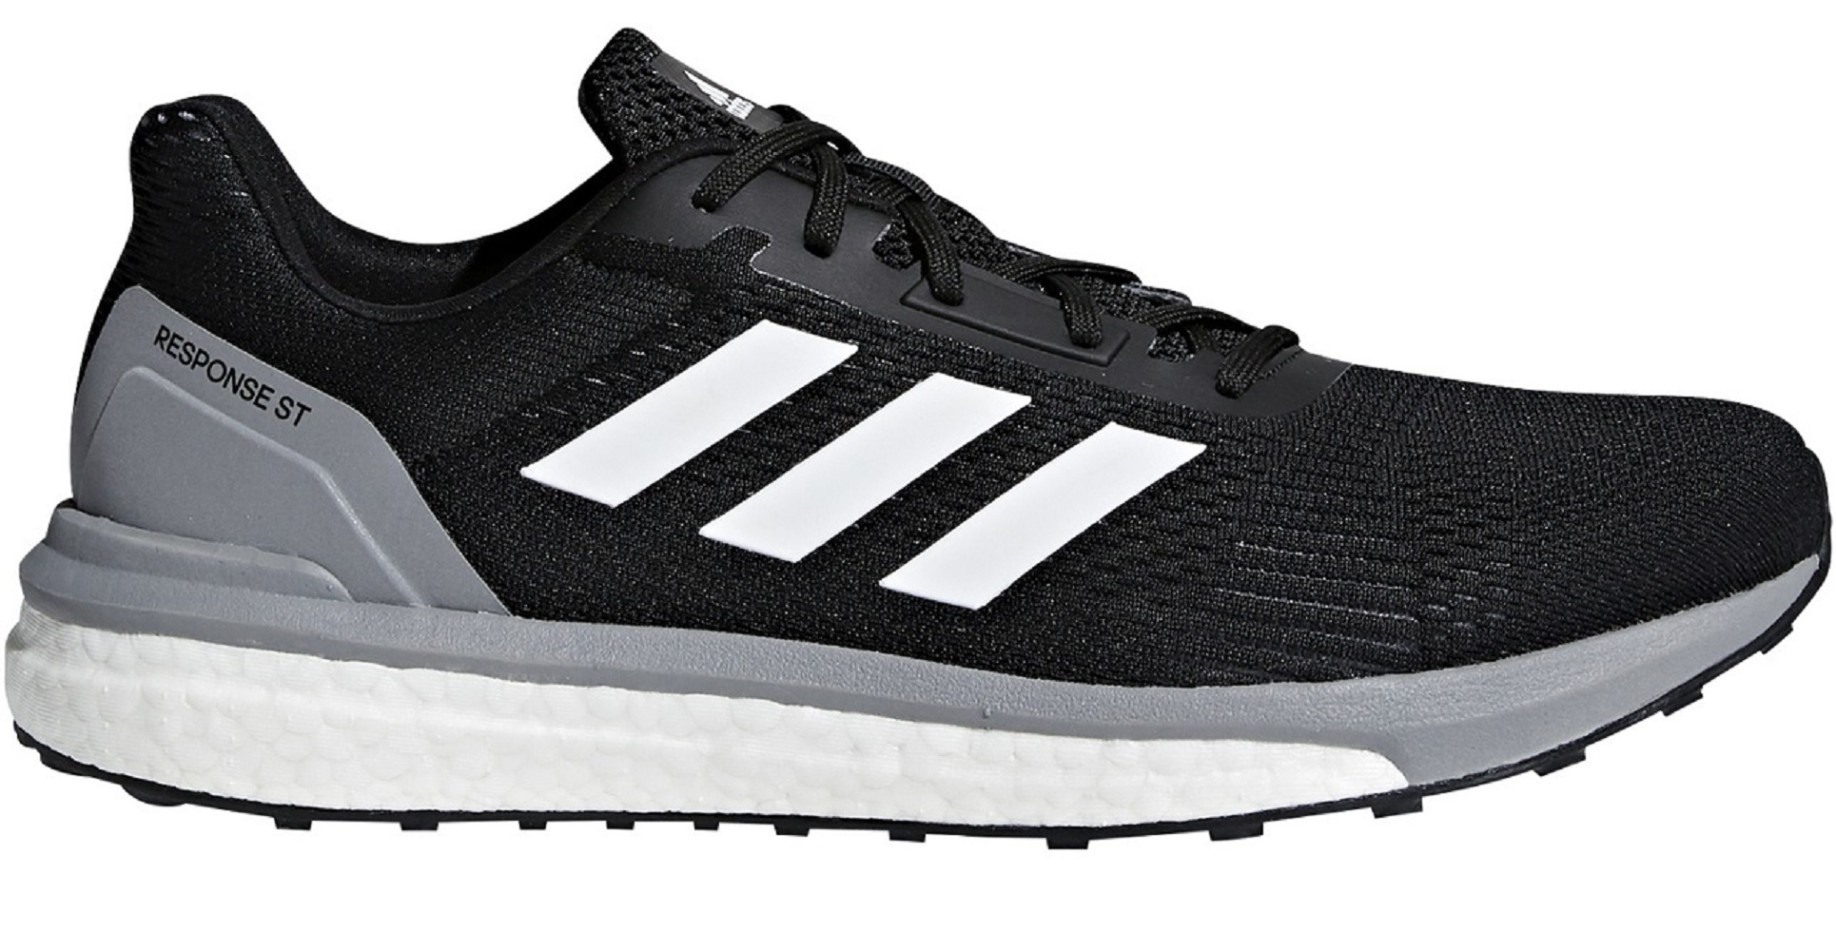 Mens Running shoes Response ST A4